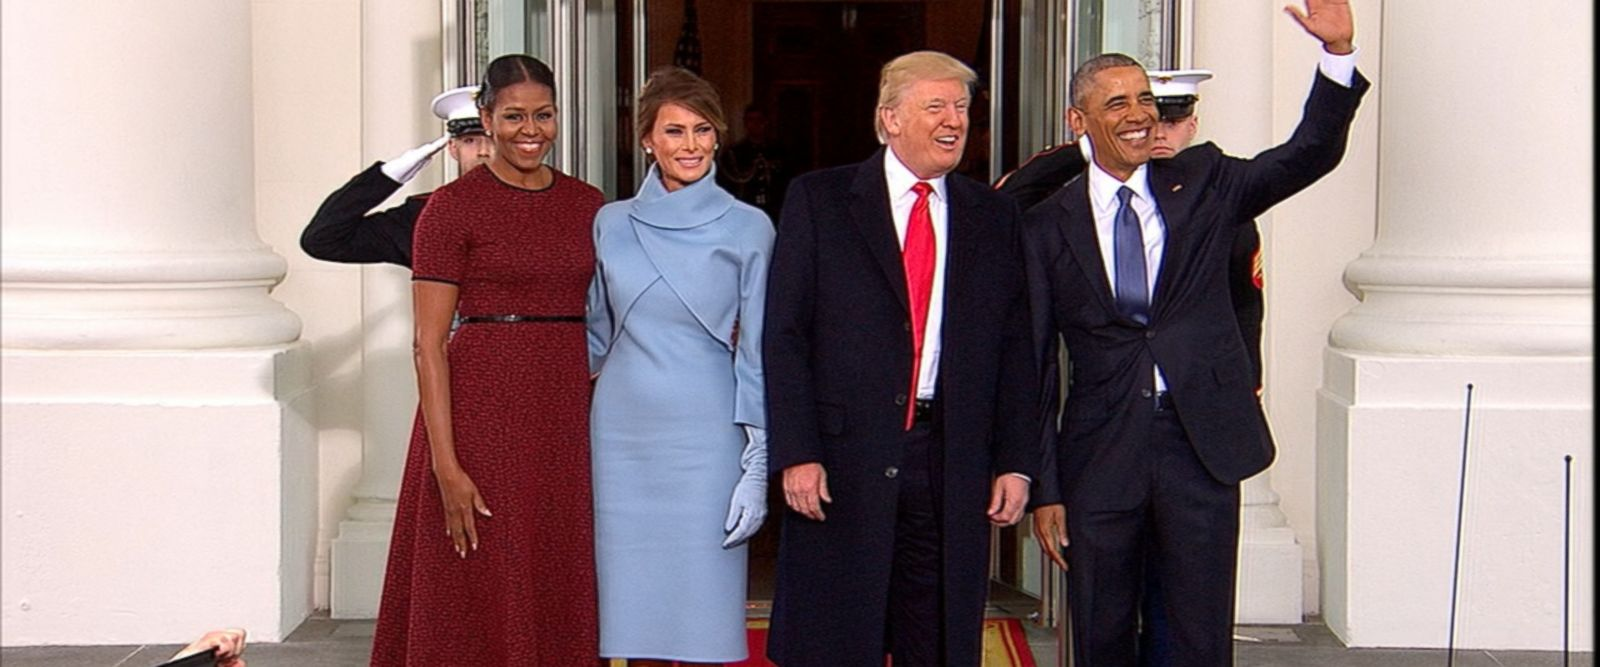 VIDEO: Barack Obama and the first lady exchanged pleasantries with Donald and Melania Trump at the entrance of 1600 Pennsylvania Avenue.